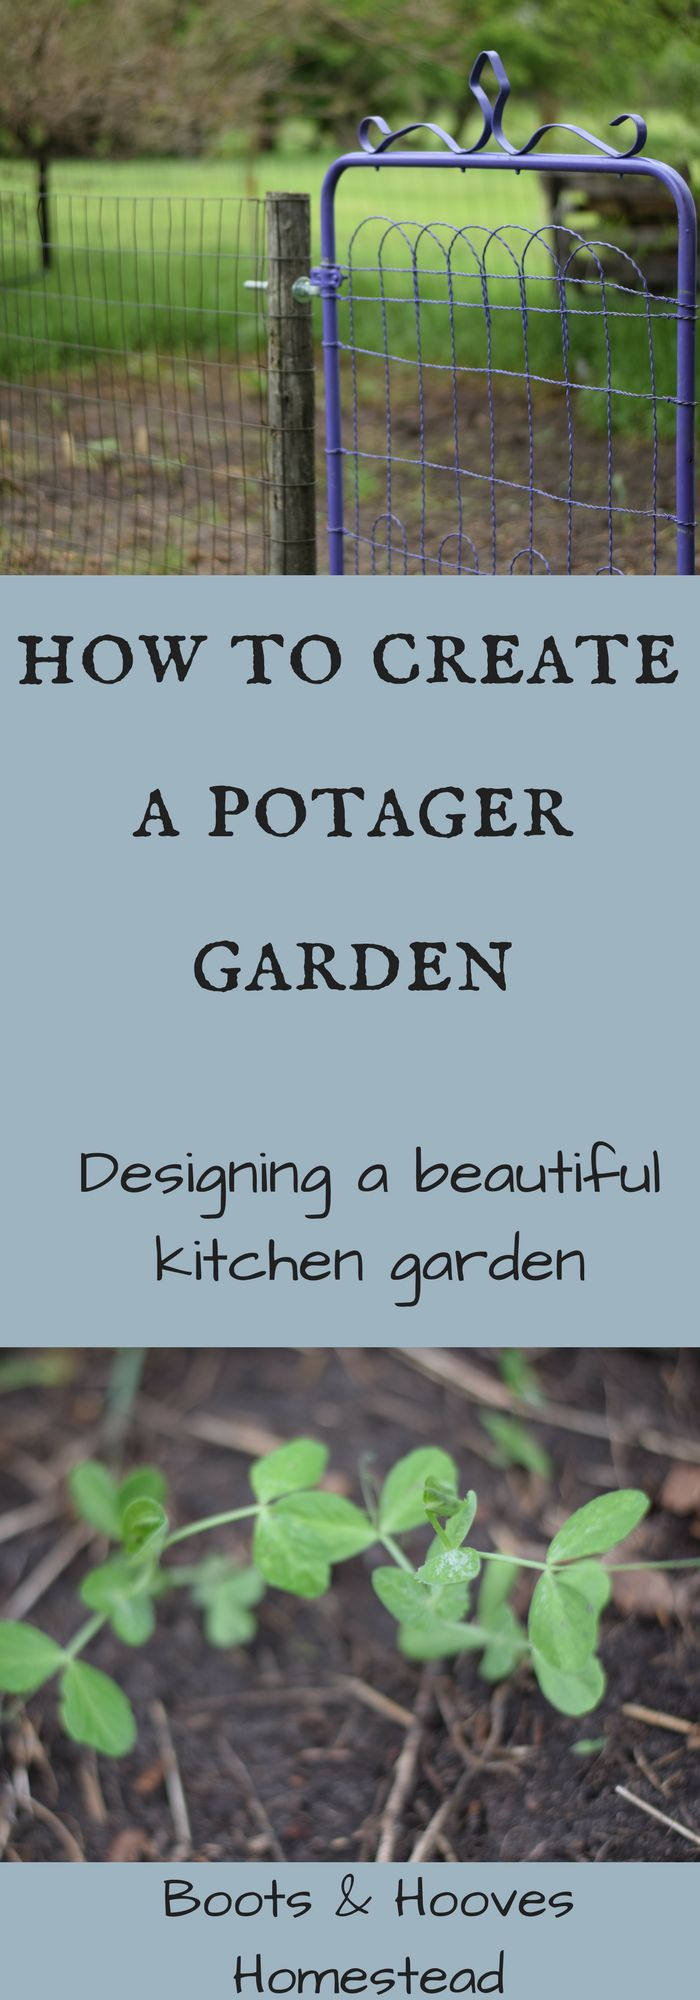 Best 20 Potager garden ideas on Pinterest Stone raised